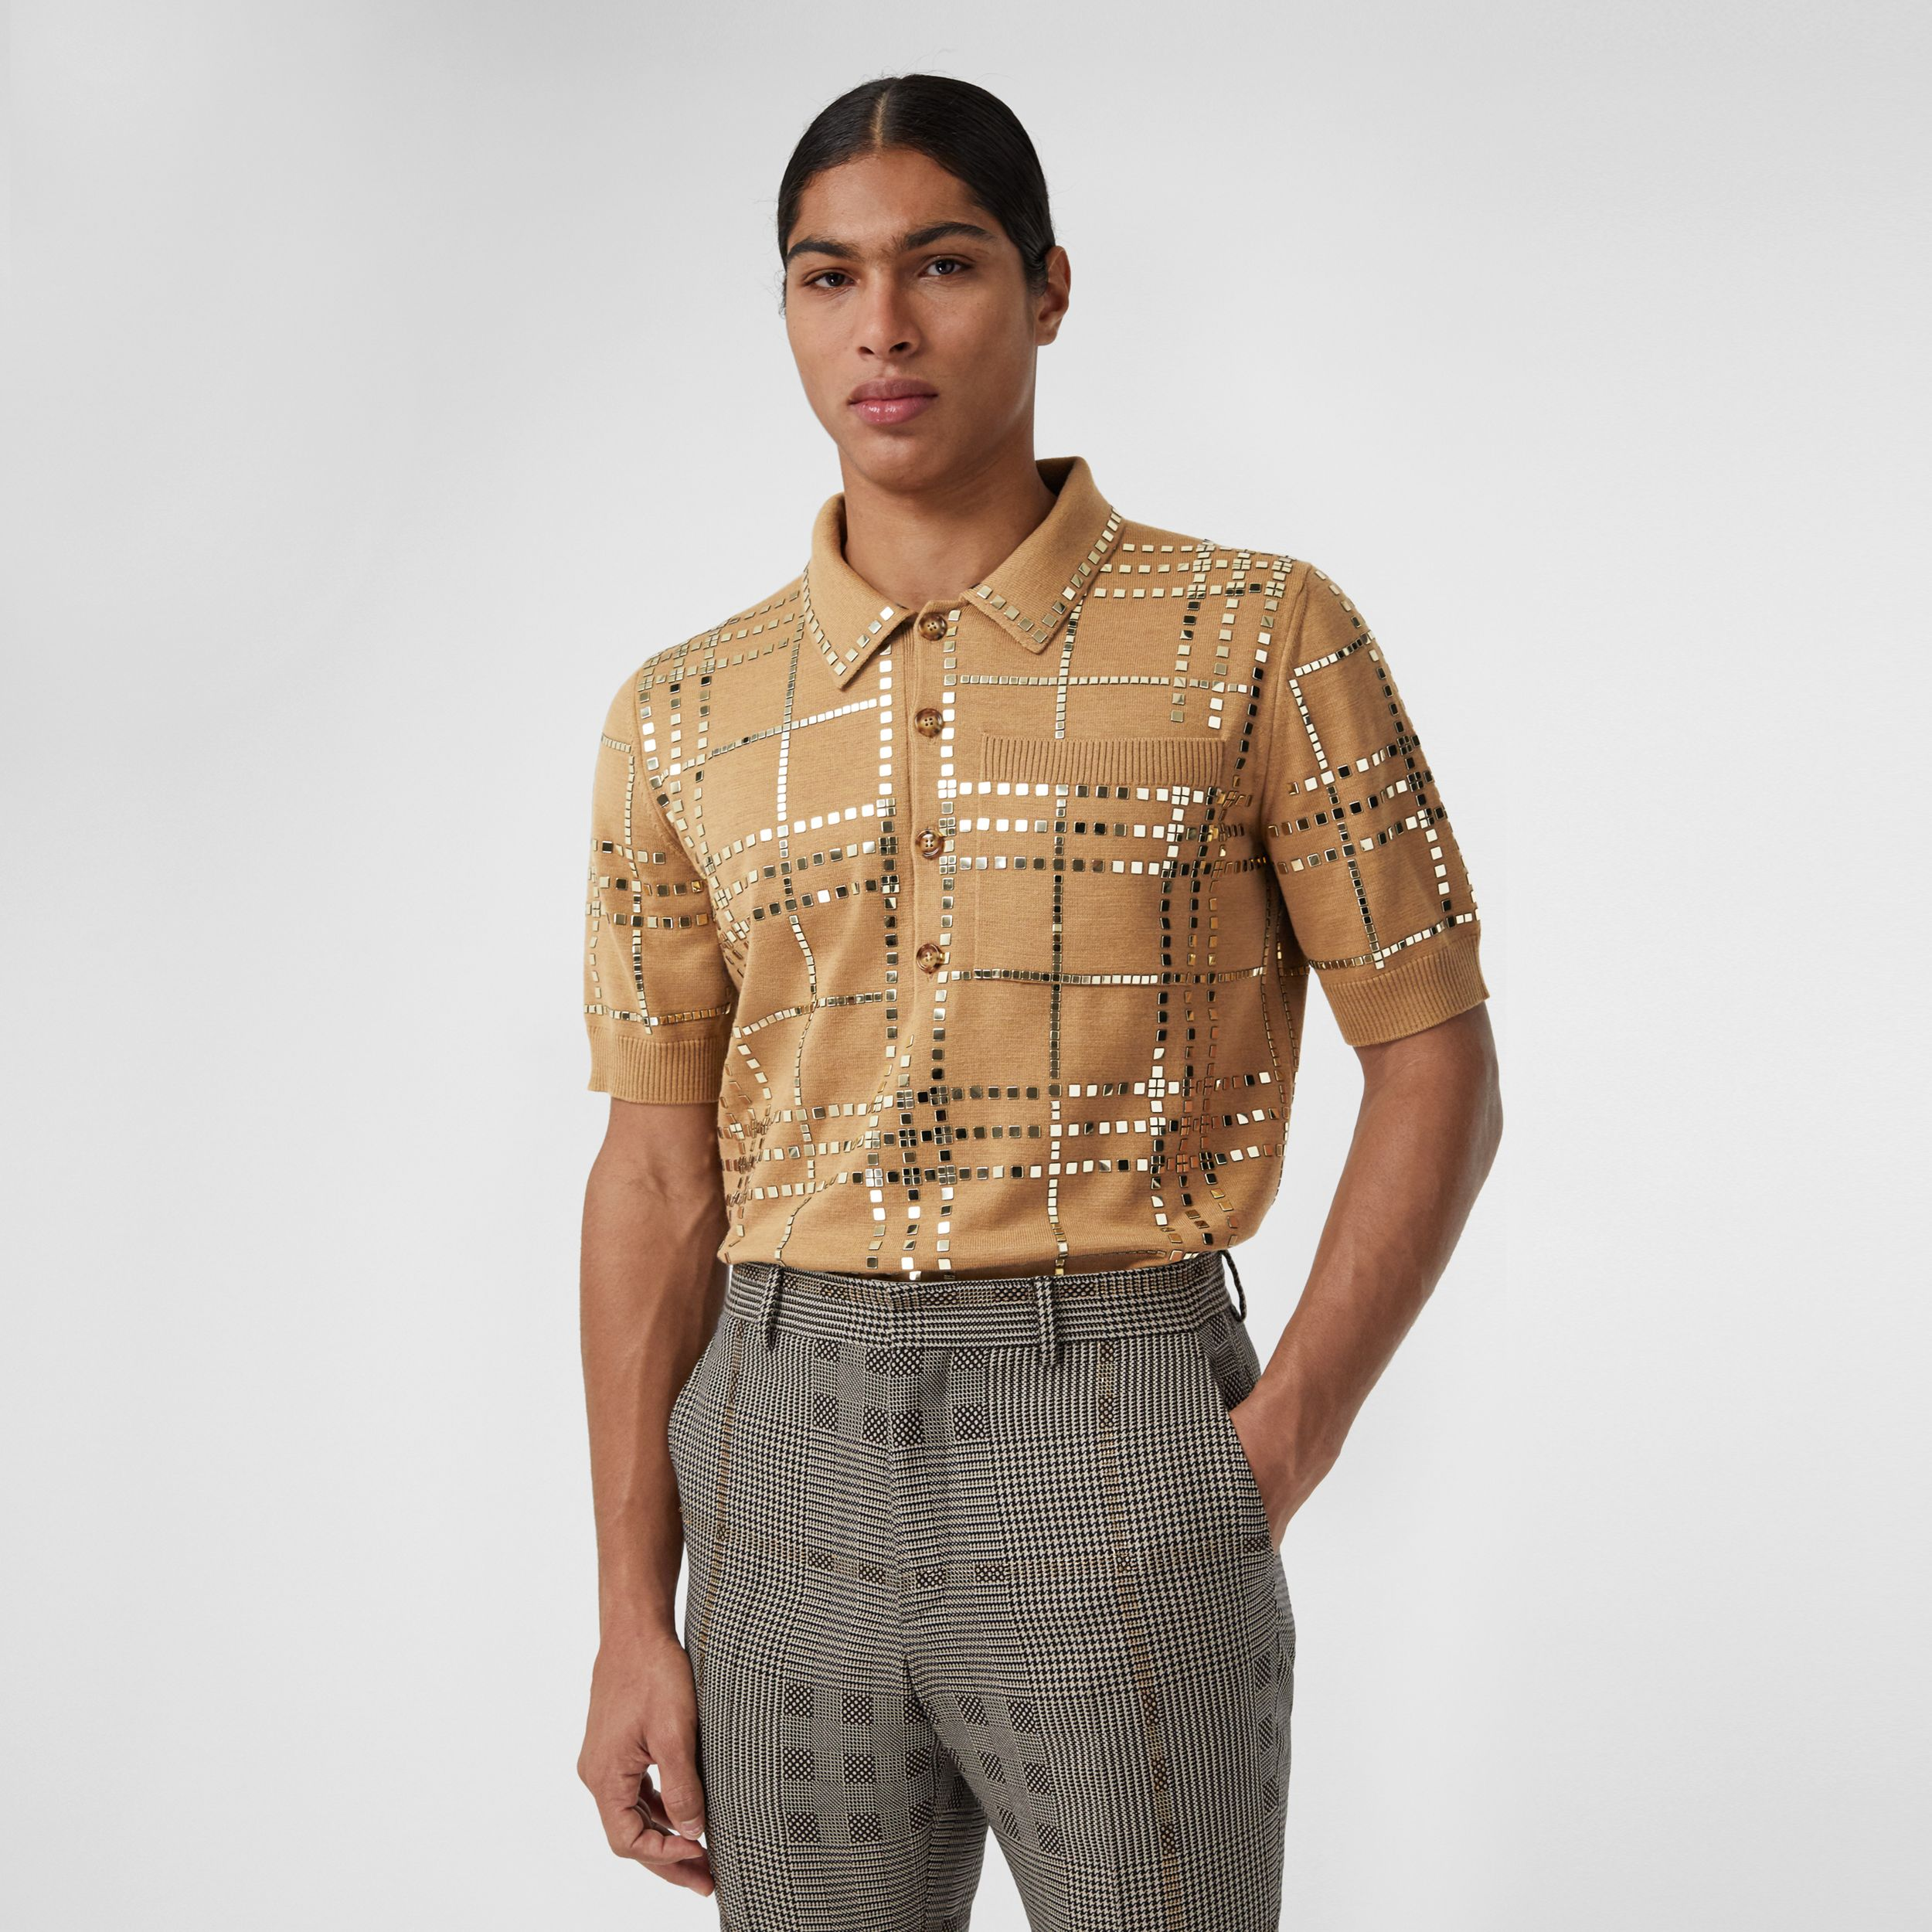 Mirrored Check Wool Jersey Polo Shirt in Camel | Burberry - 1